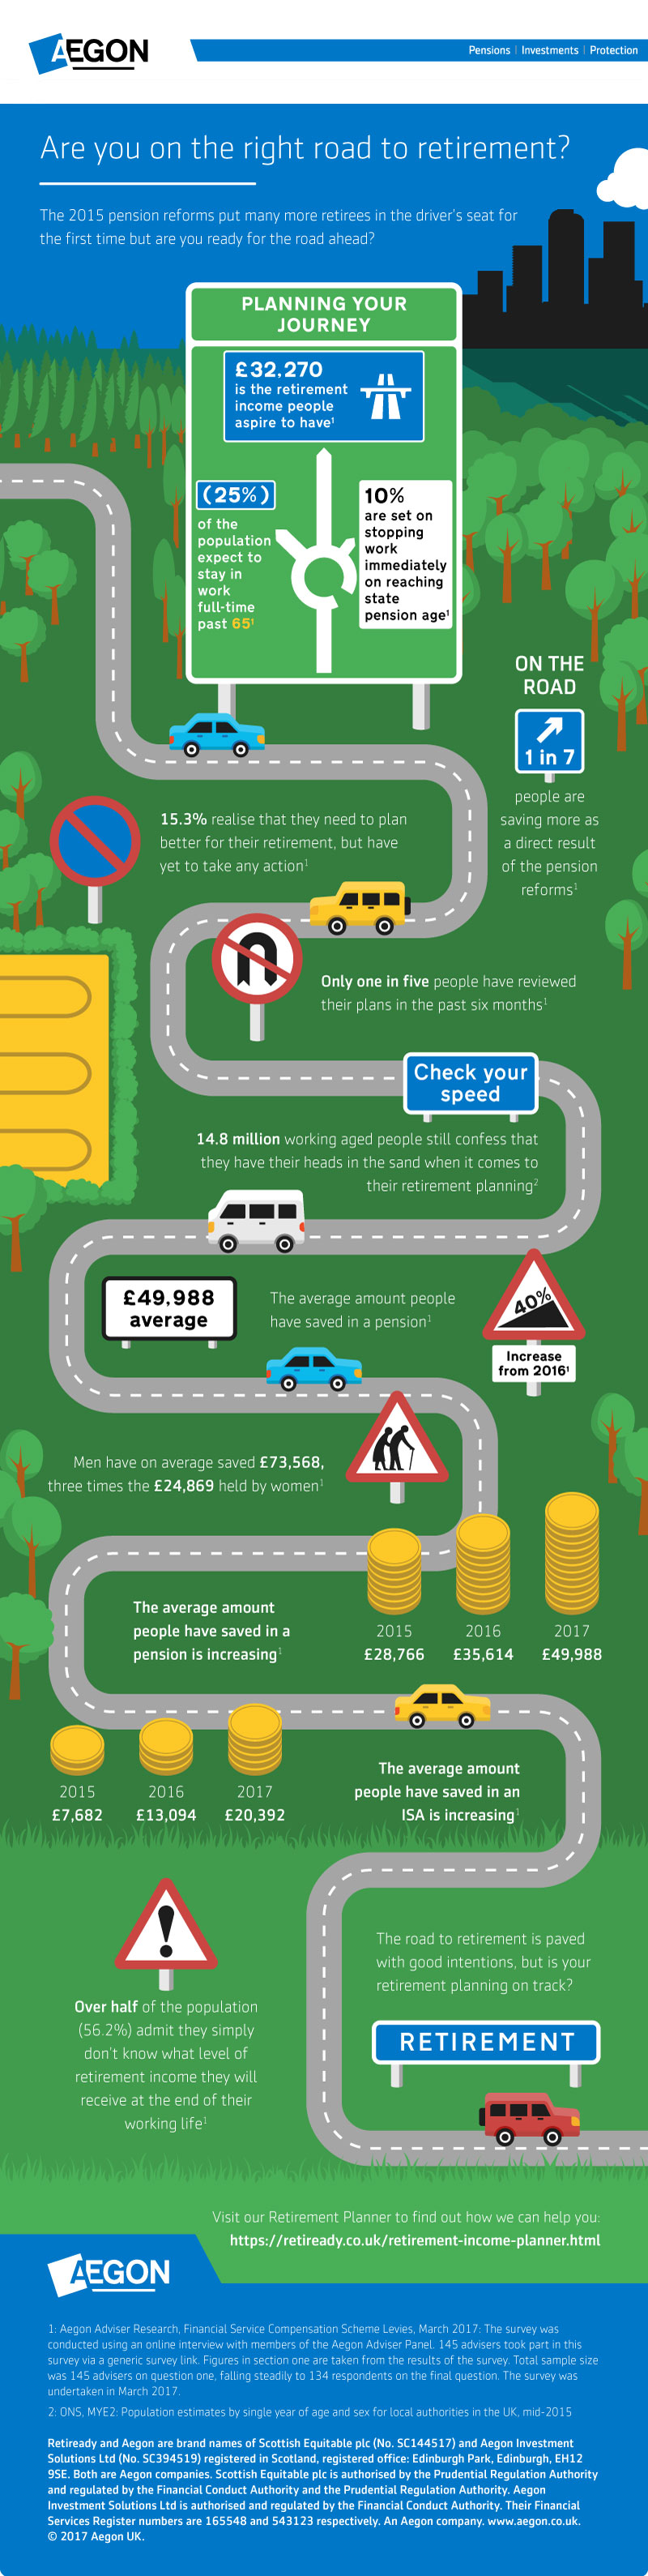 Aegon pension infographic